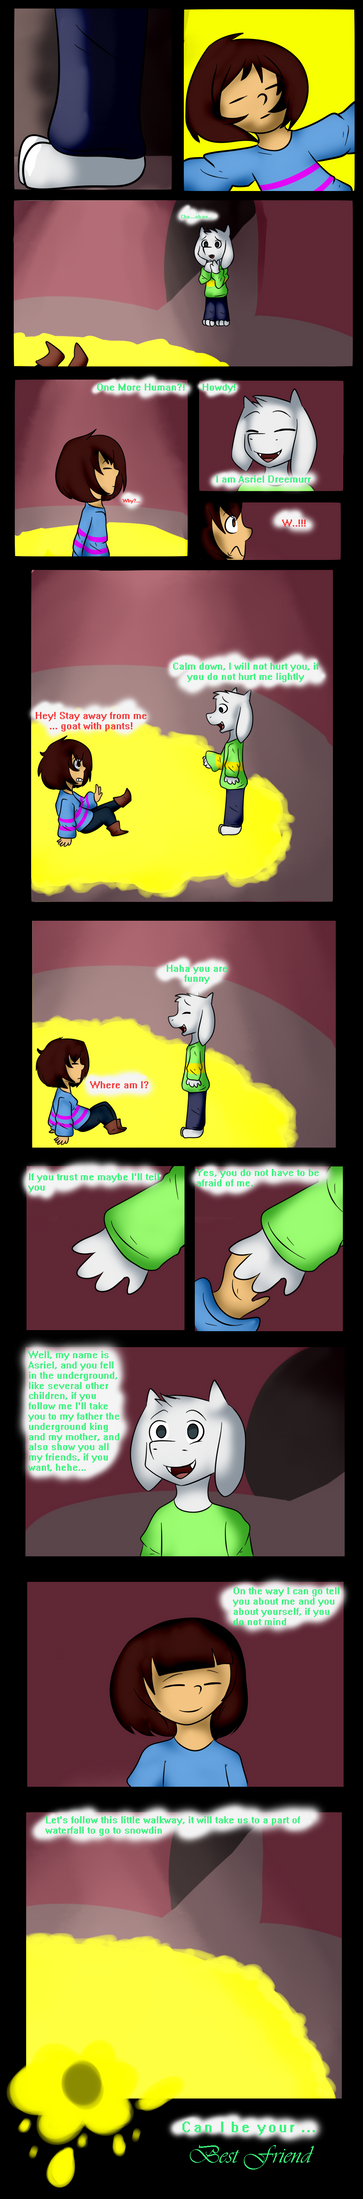 Page 1 kimochi tale - the new...Friend by MariMey